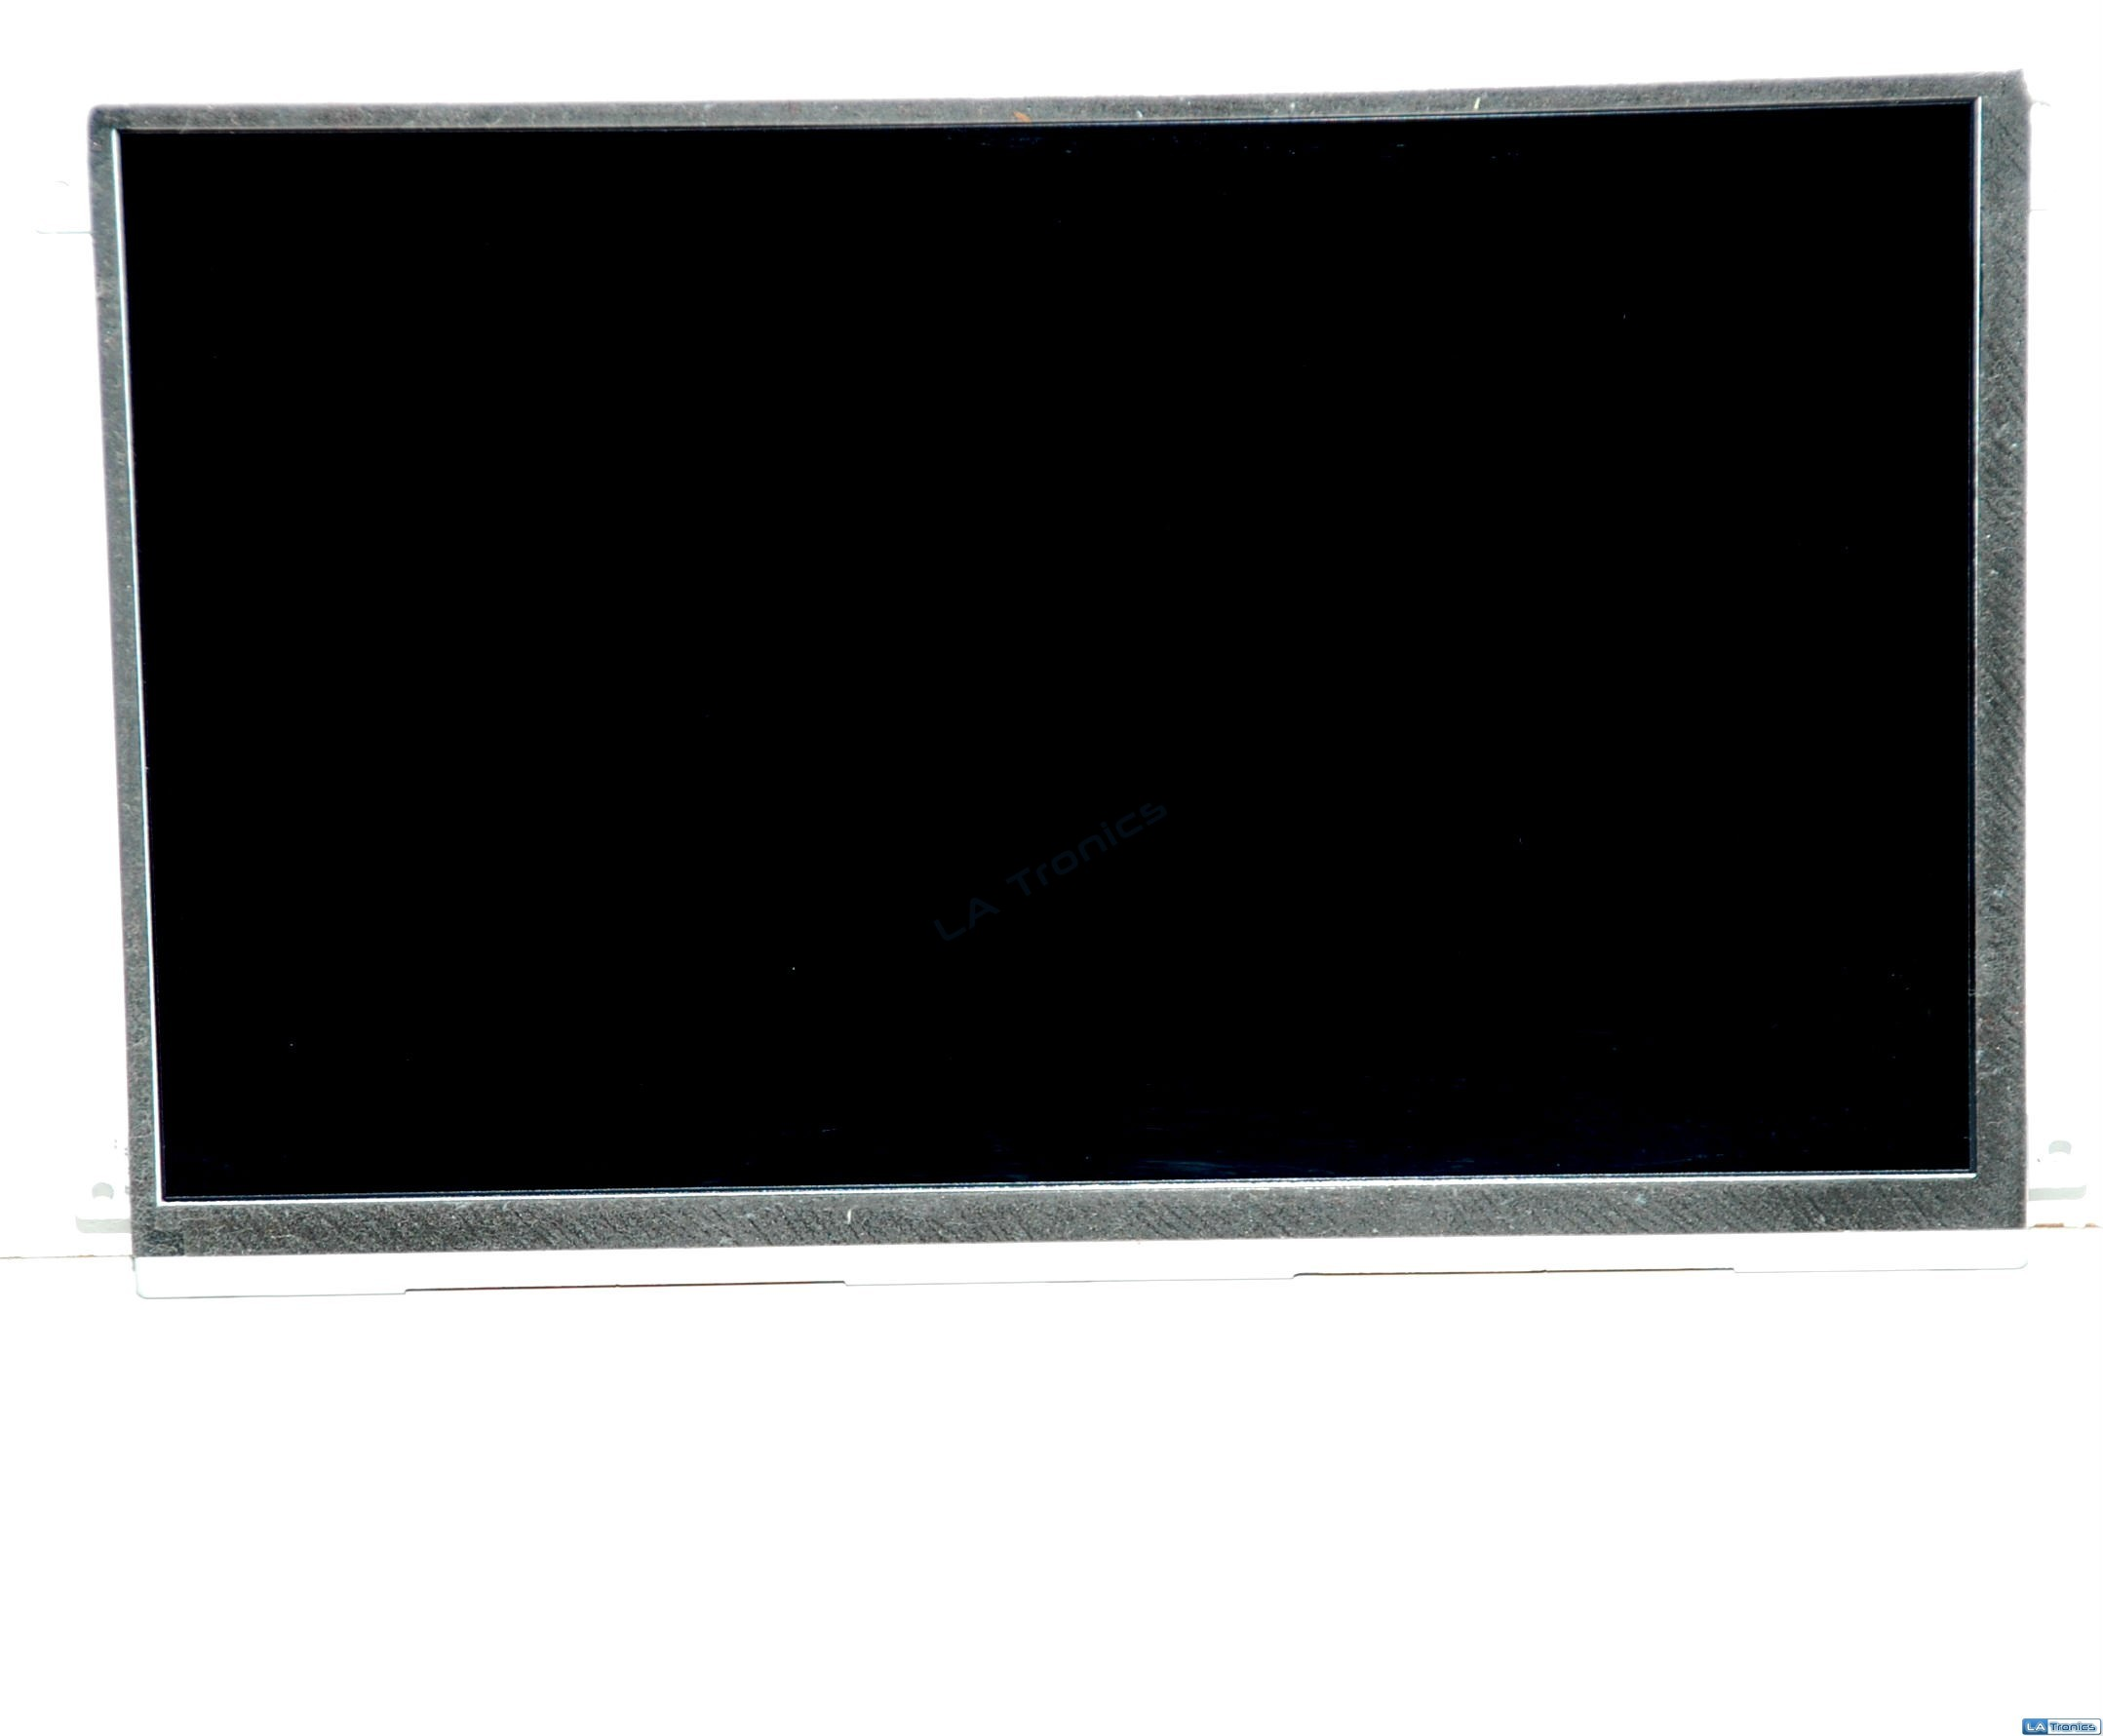 "Genuine Rim Blackberry Playbook OS 4460 7"" Glossy LCD Screen 18D41S1"